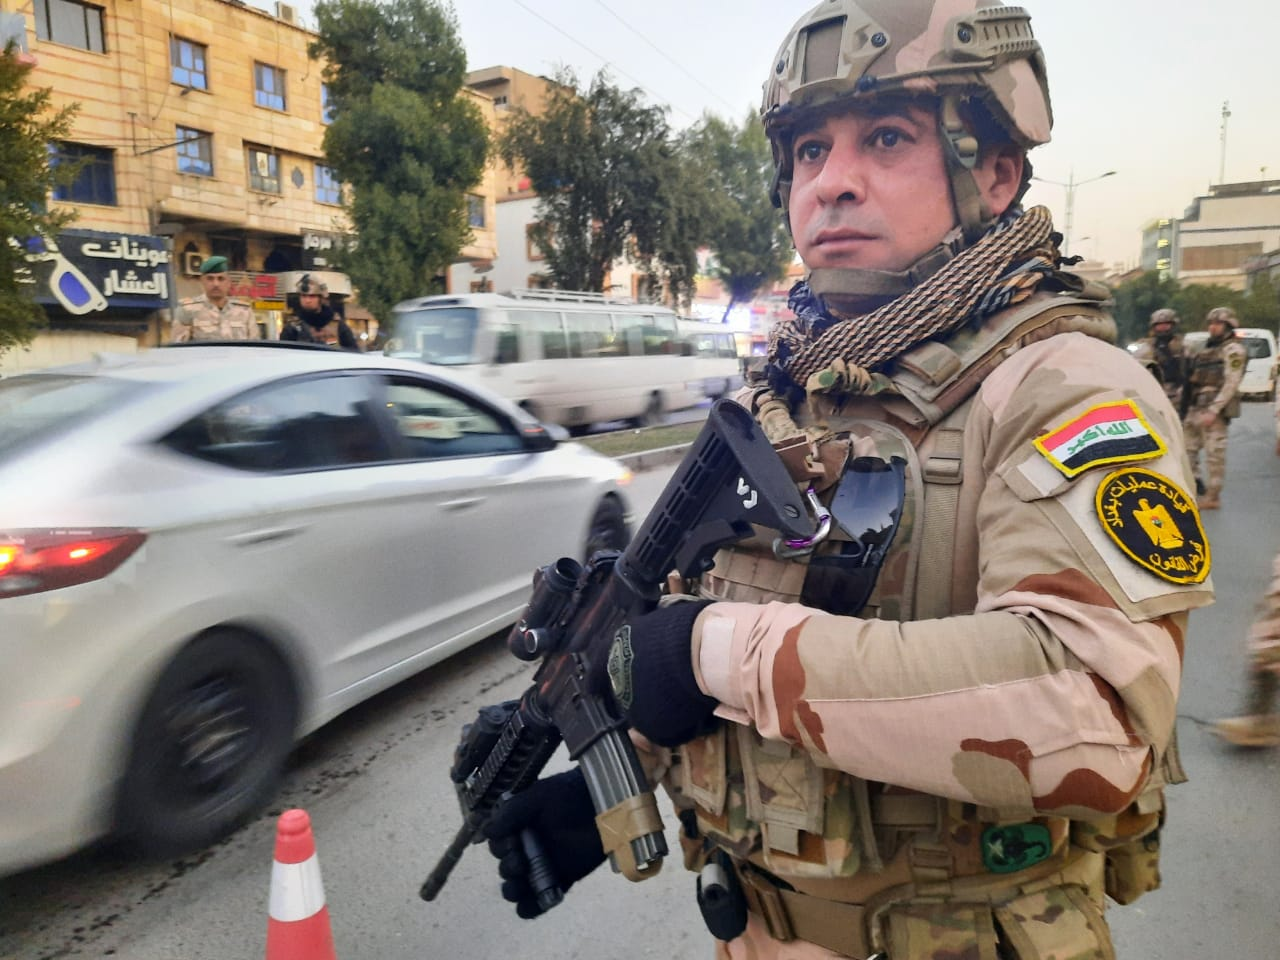 Four terrorists arrested in Baghdad, Statement says